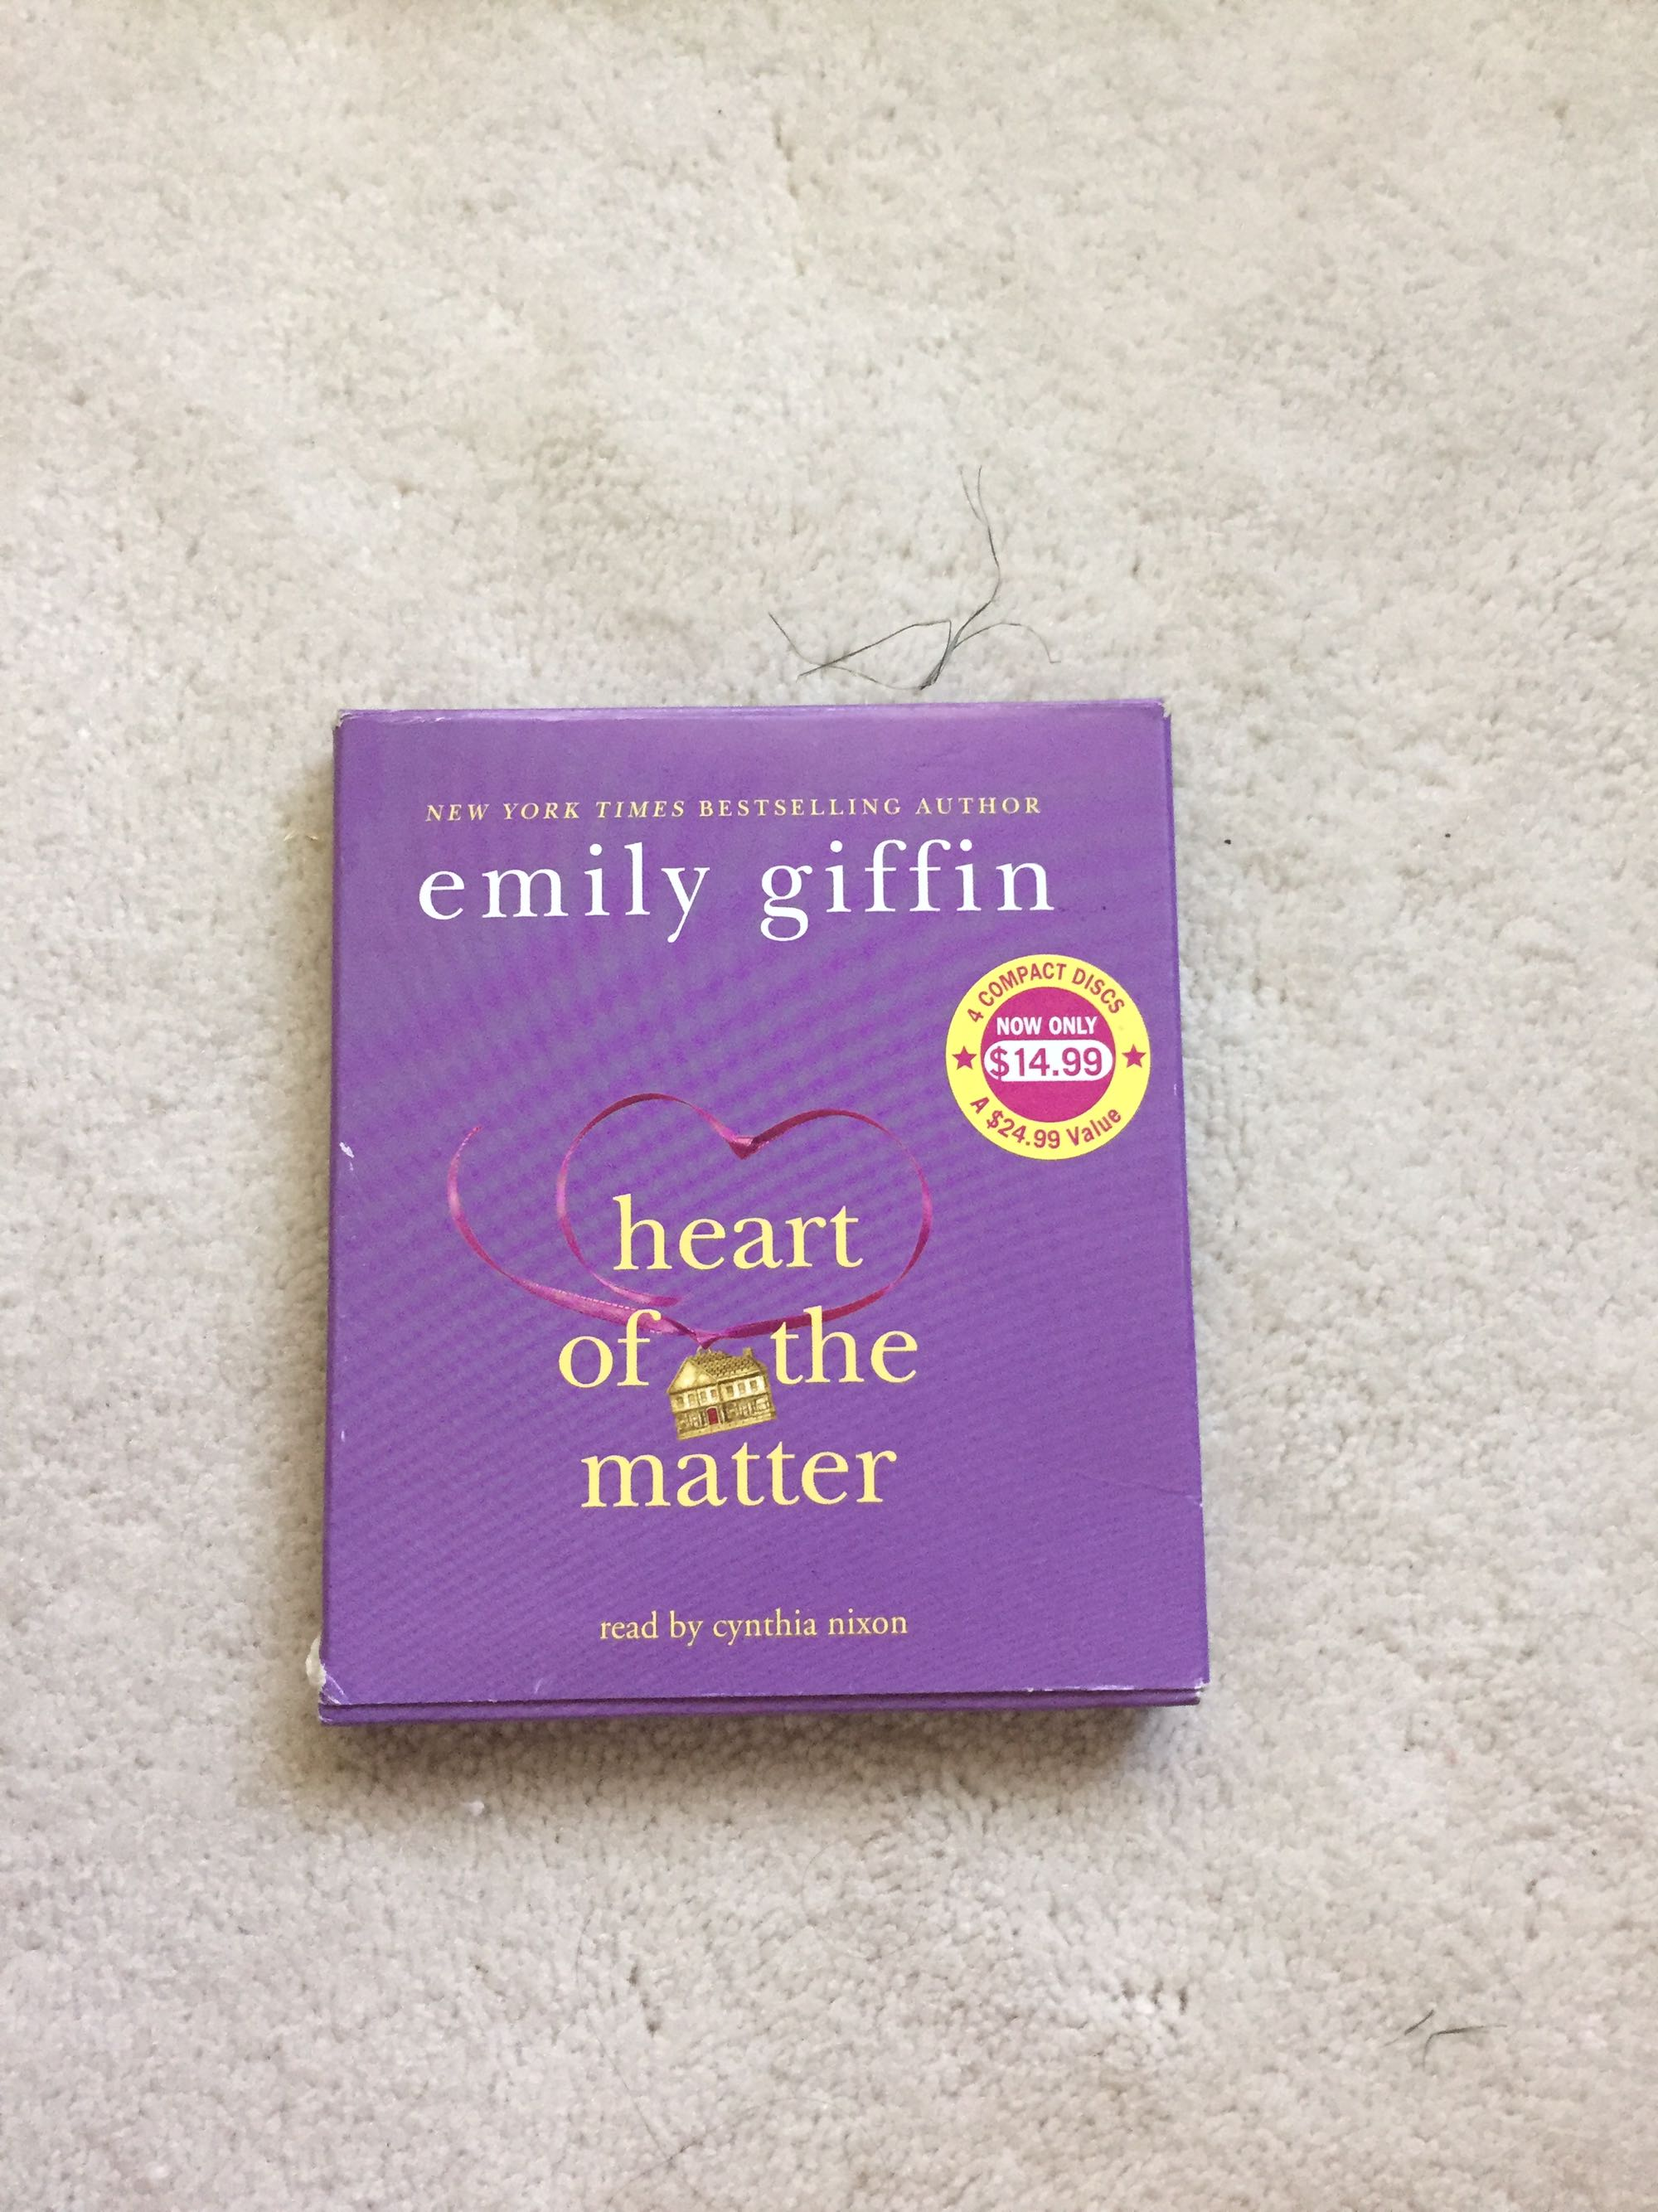 Heart of the matter audiobook by Emily giffin